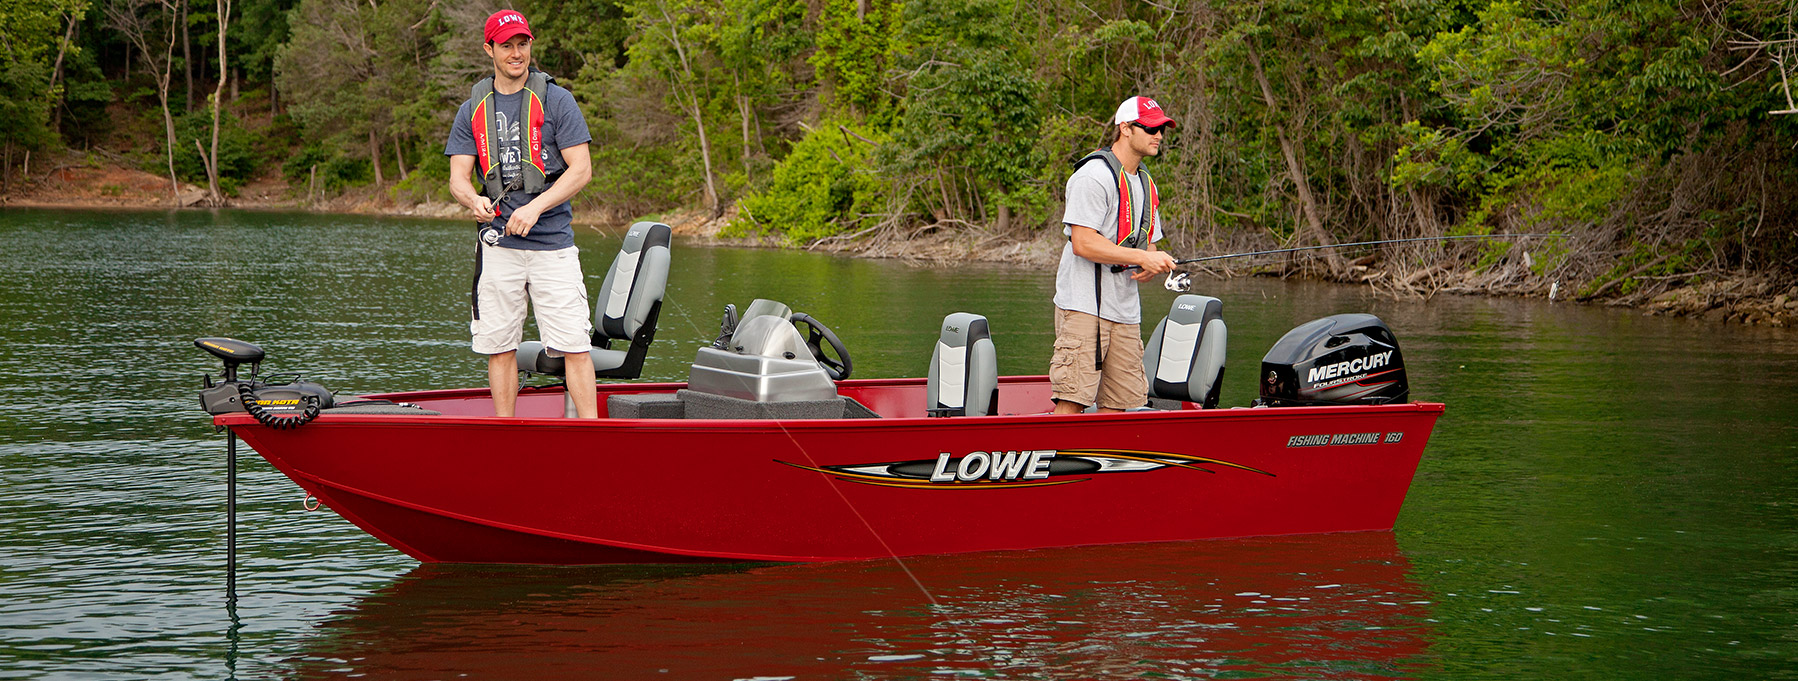 Lowe boats fm 160s deep v boat fishing boats dealers and for Deep v fishing boats